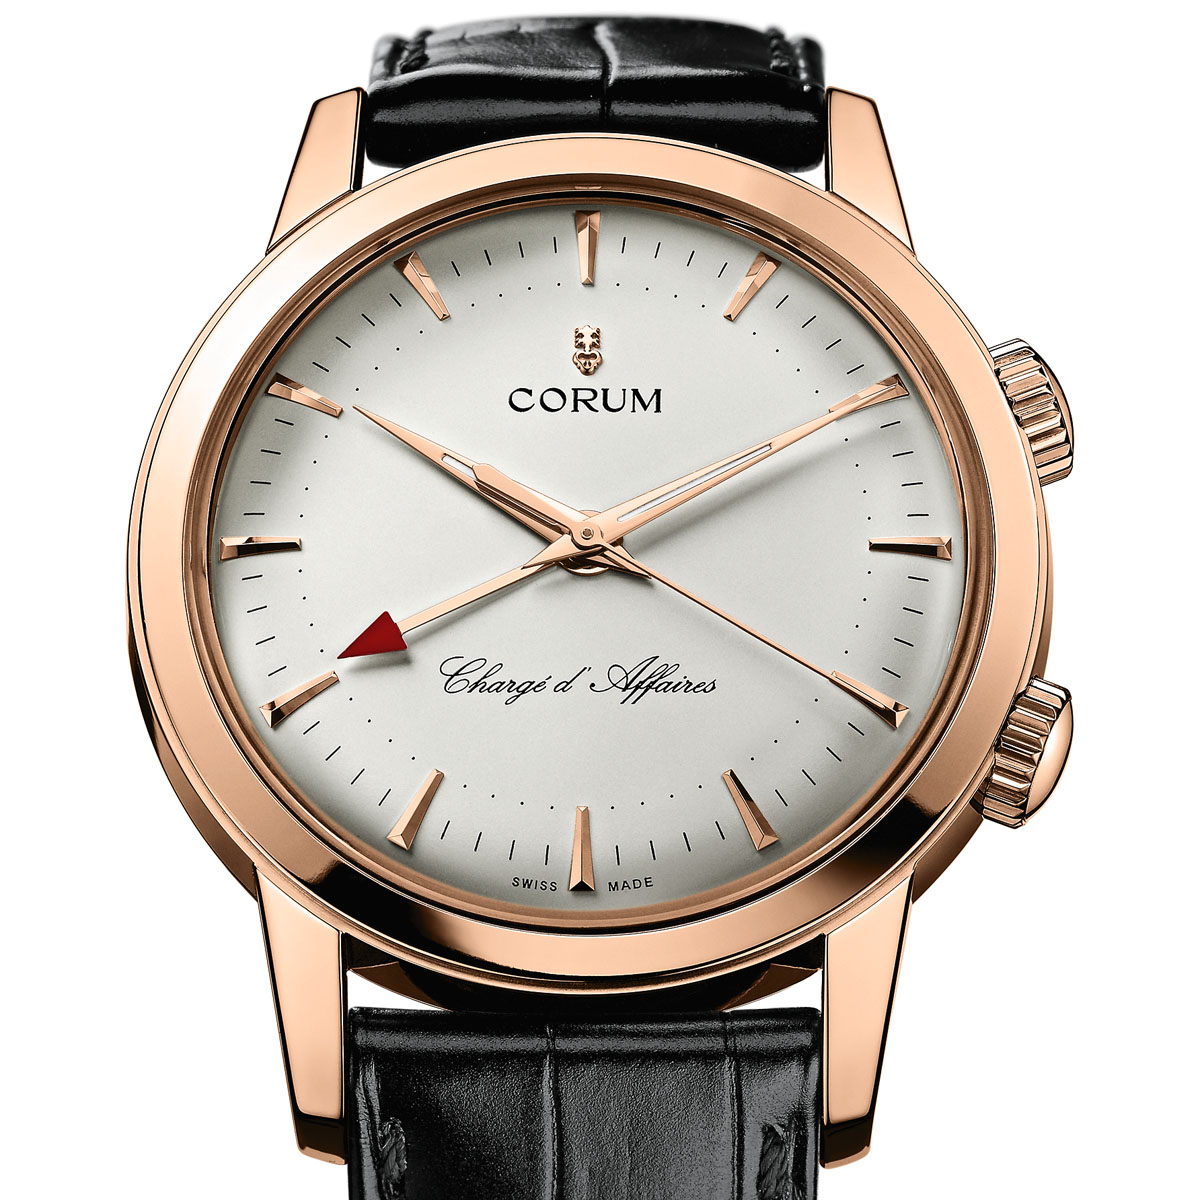 The Watch Quote: Photo - Corum Heritage Vintage Chargé d'Affaires